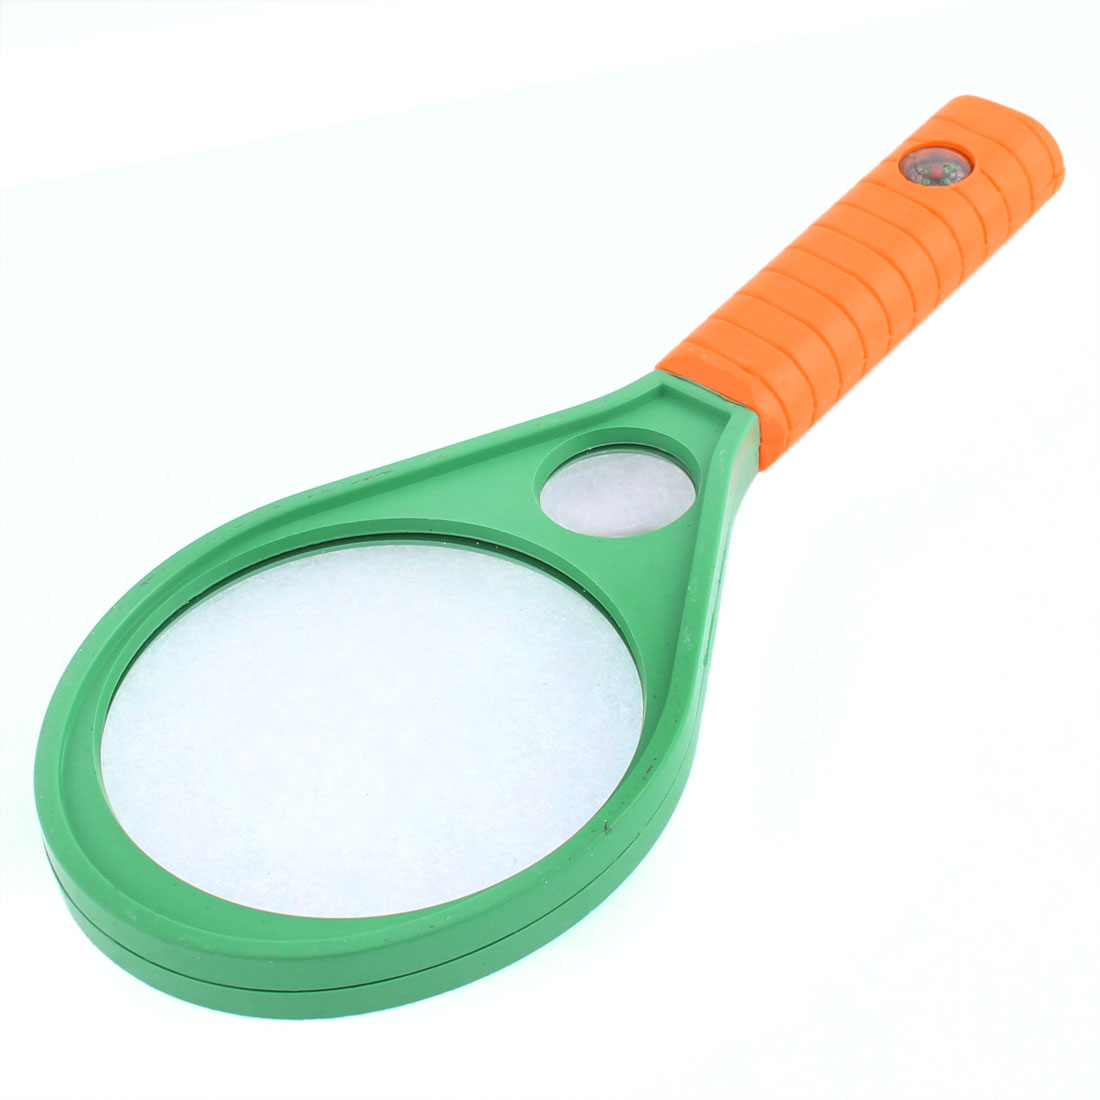 Racket Style Nonslip Grip 85mm Lens Handheld Reading Magnifying Glass Magnifier 3X